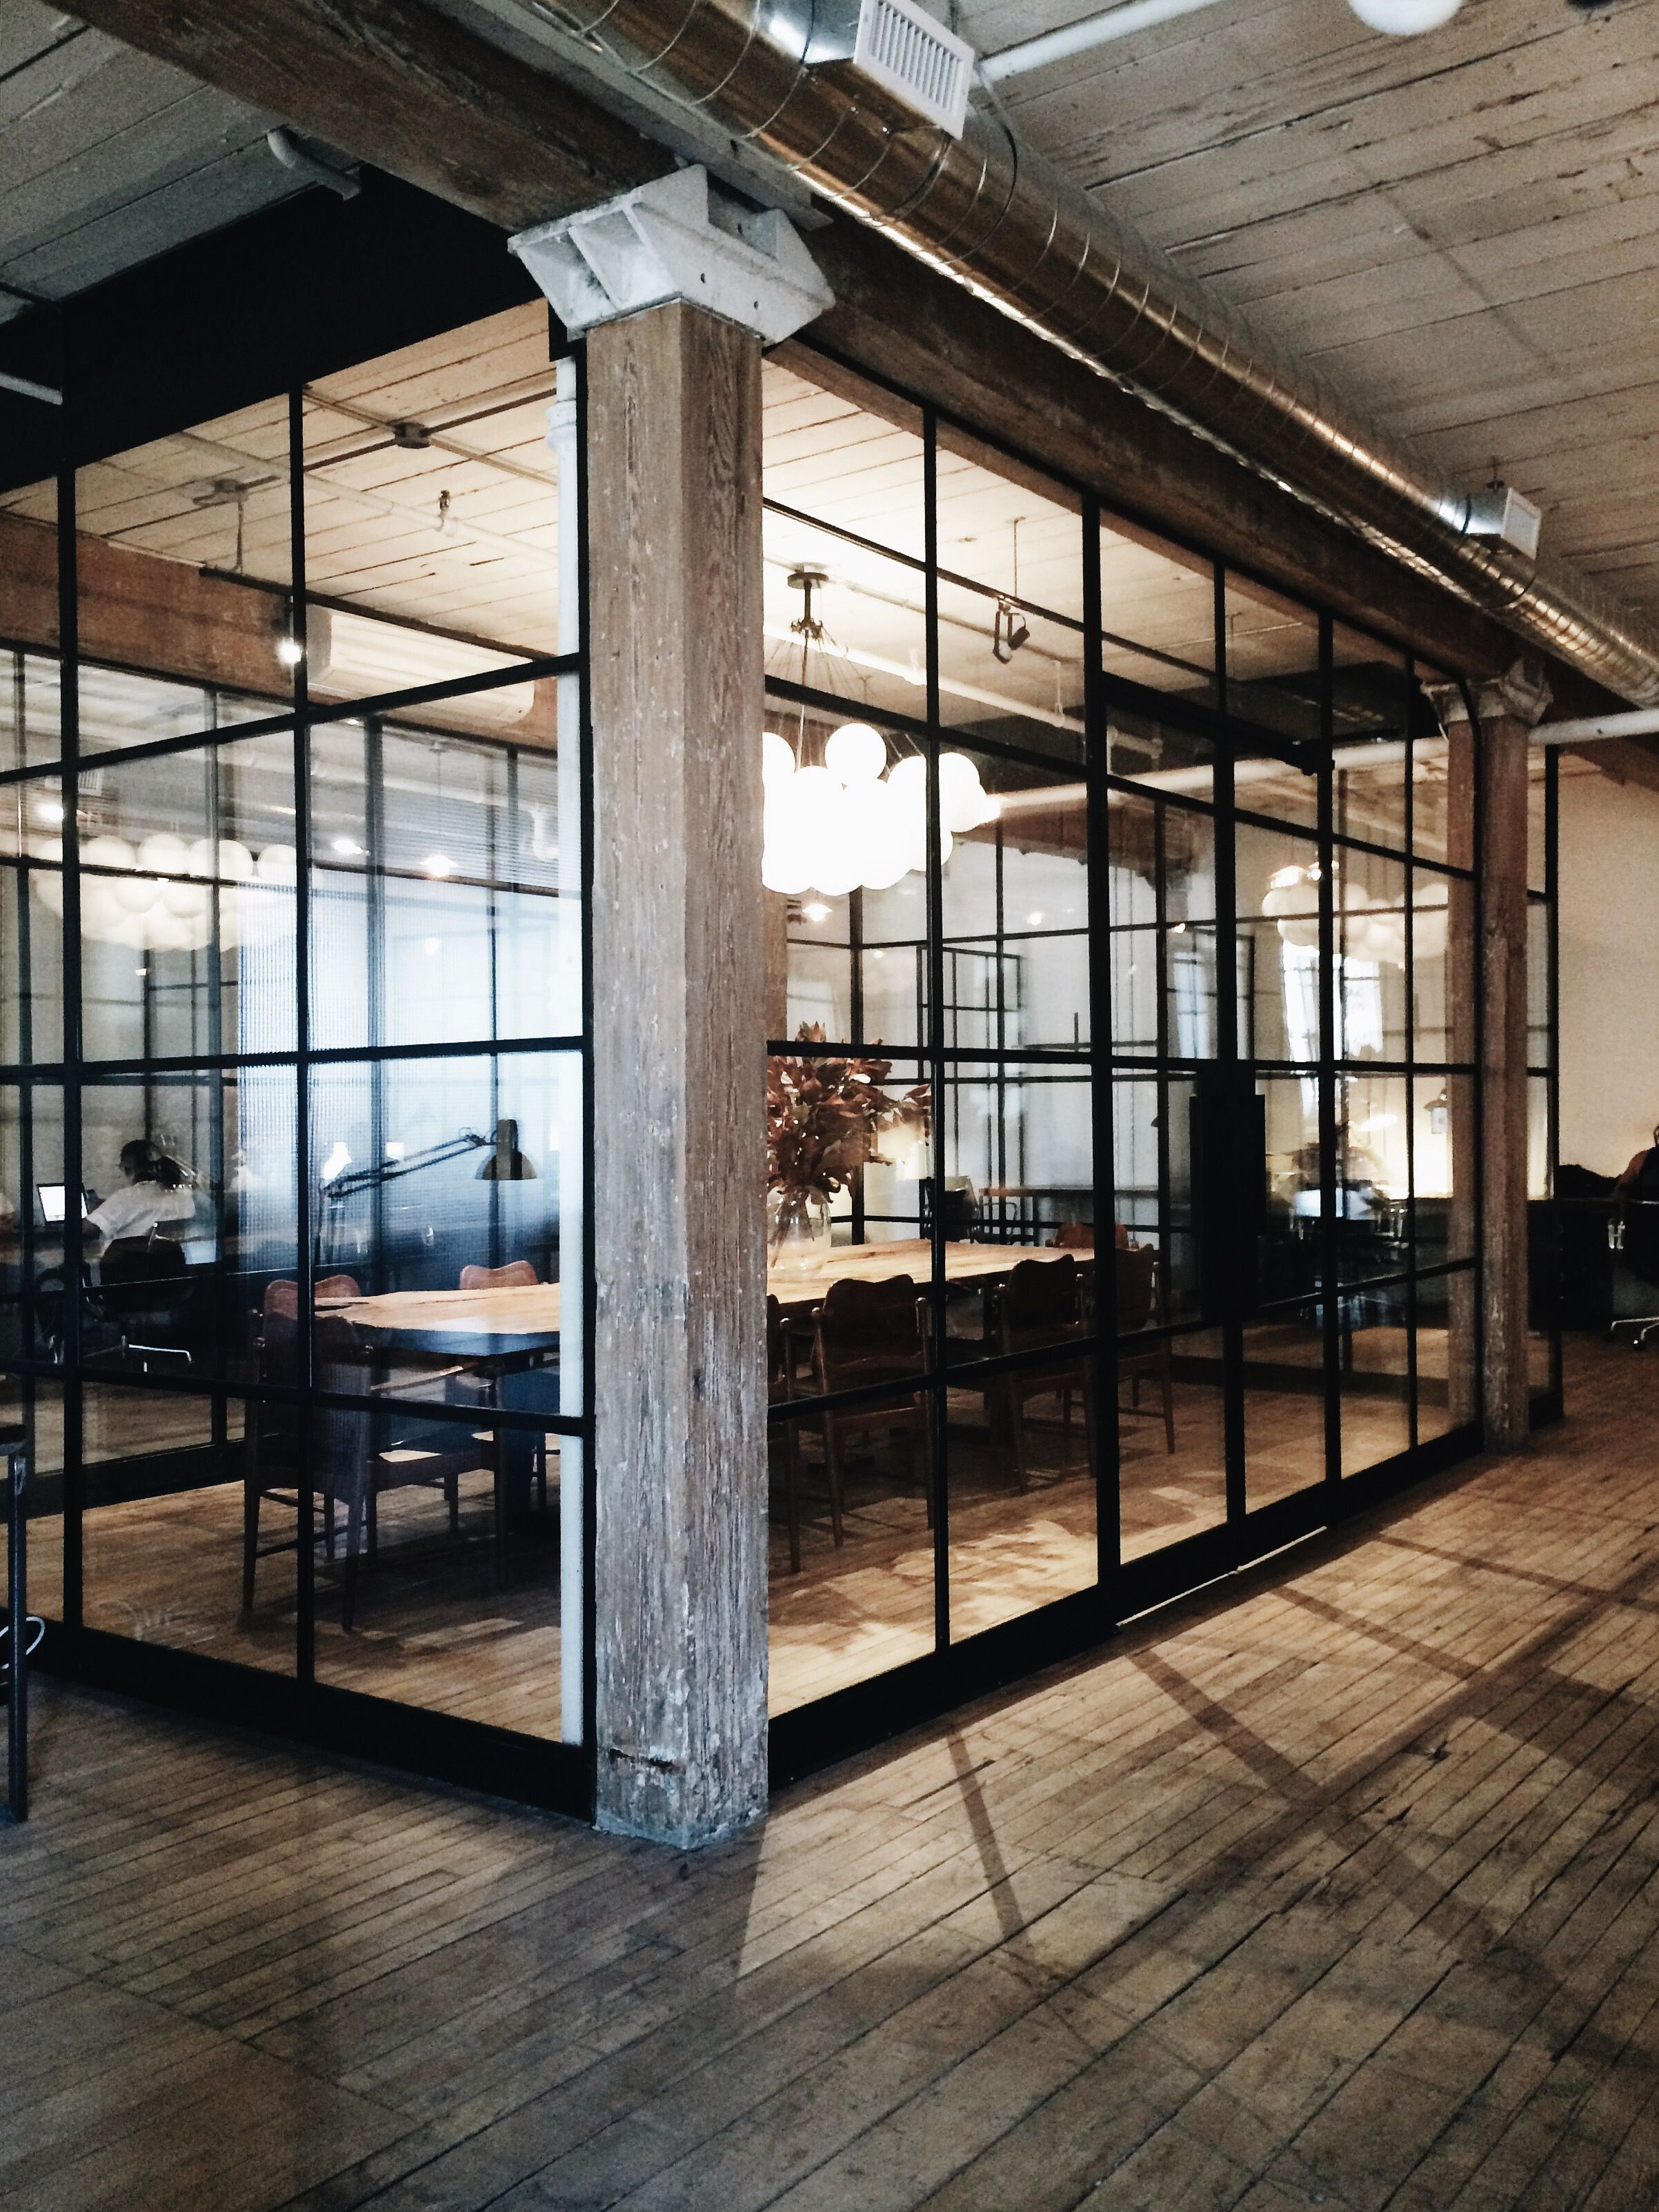 Dream Office Coworking In Style At East Room Pinteres: coworking space design ideas